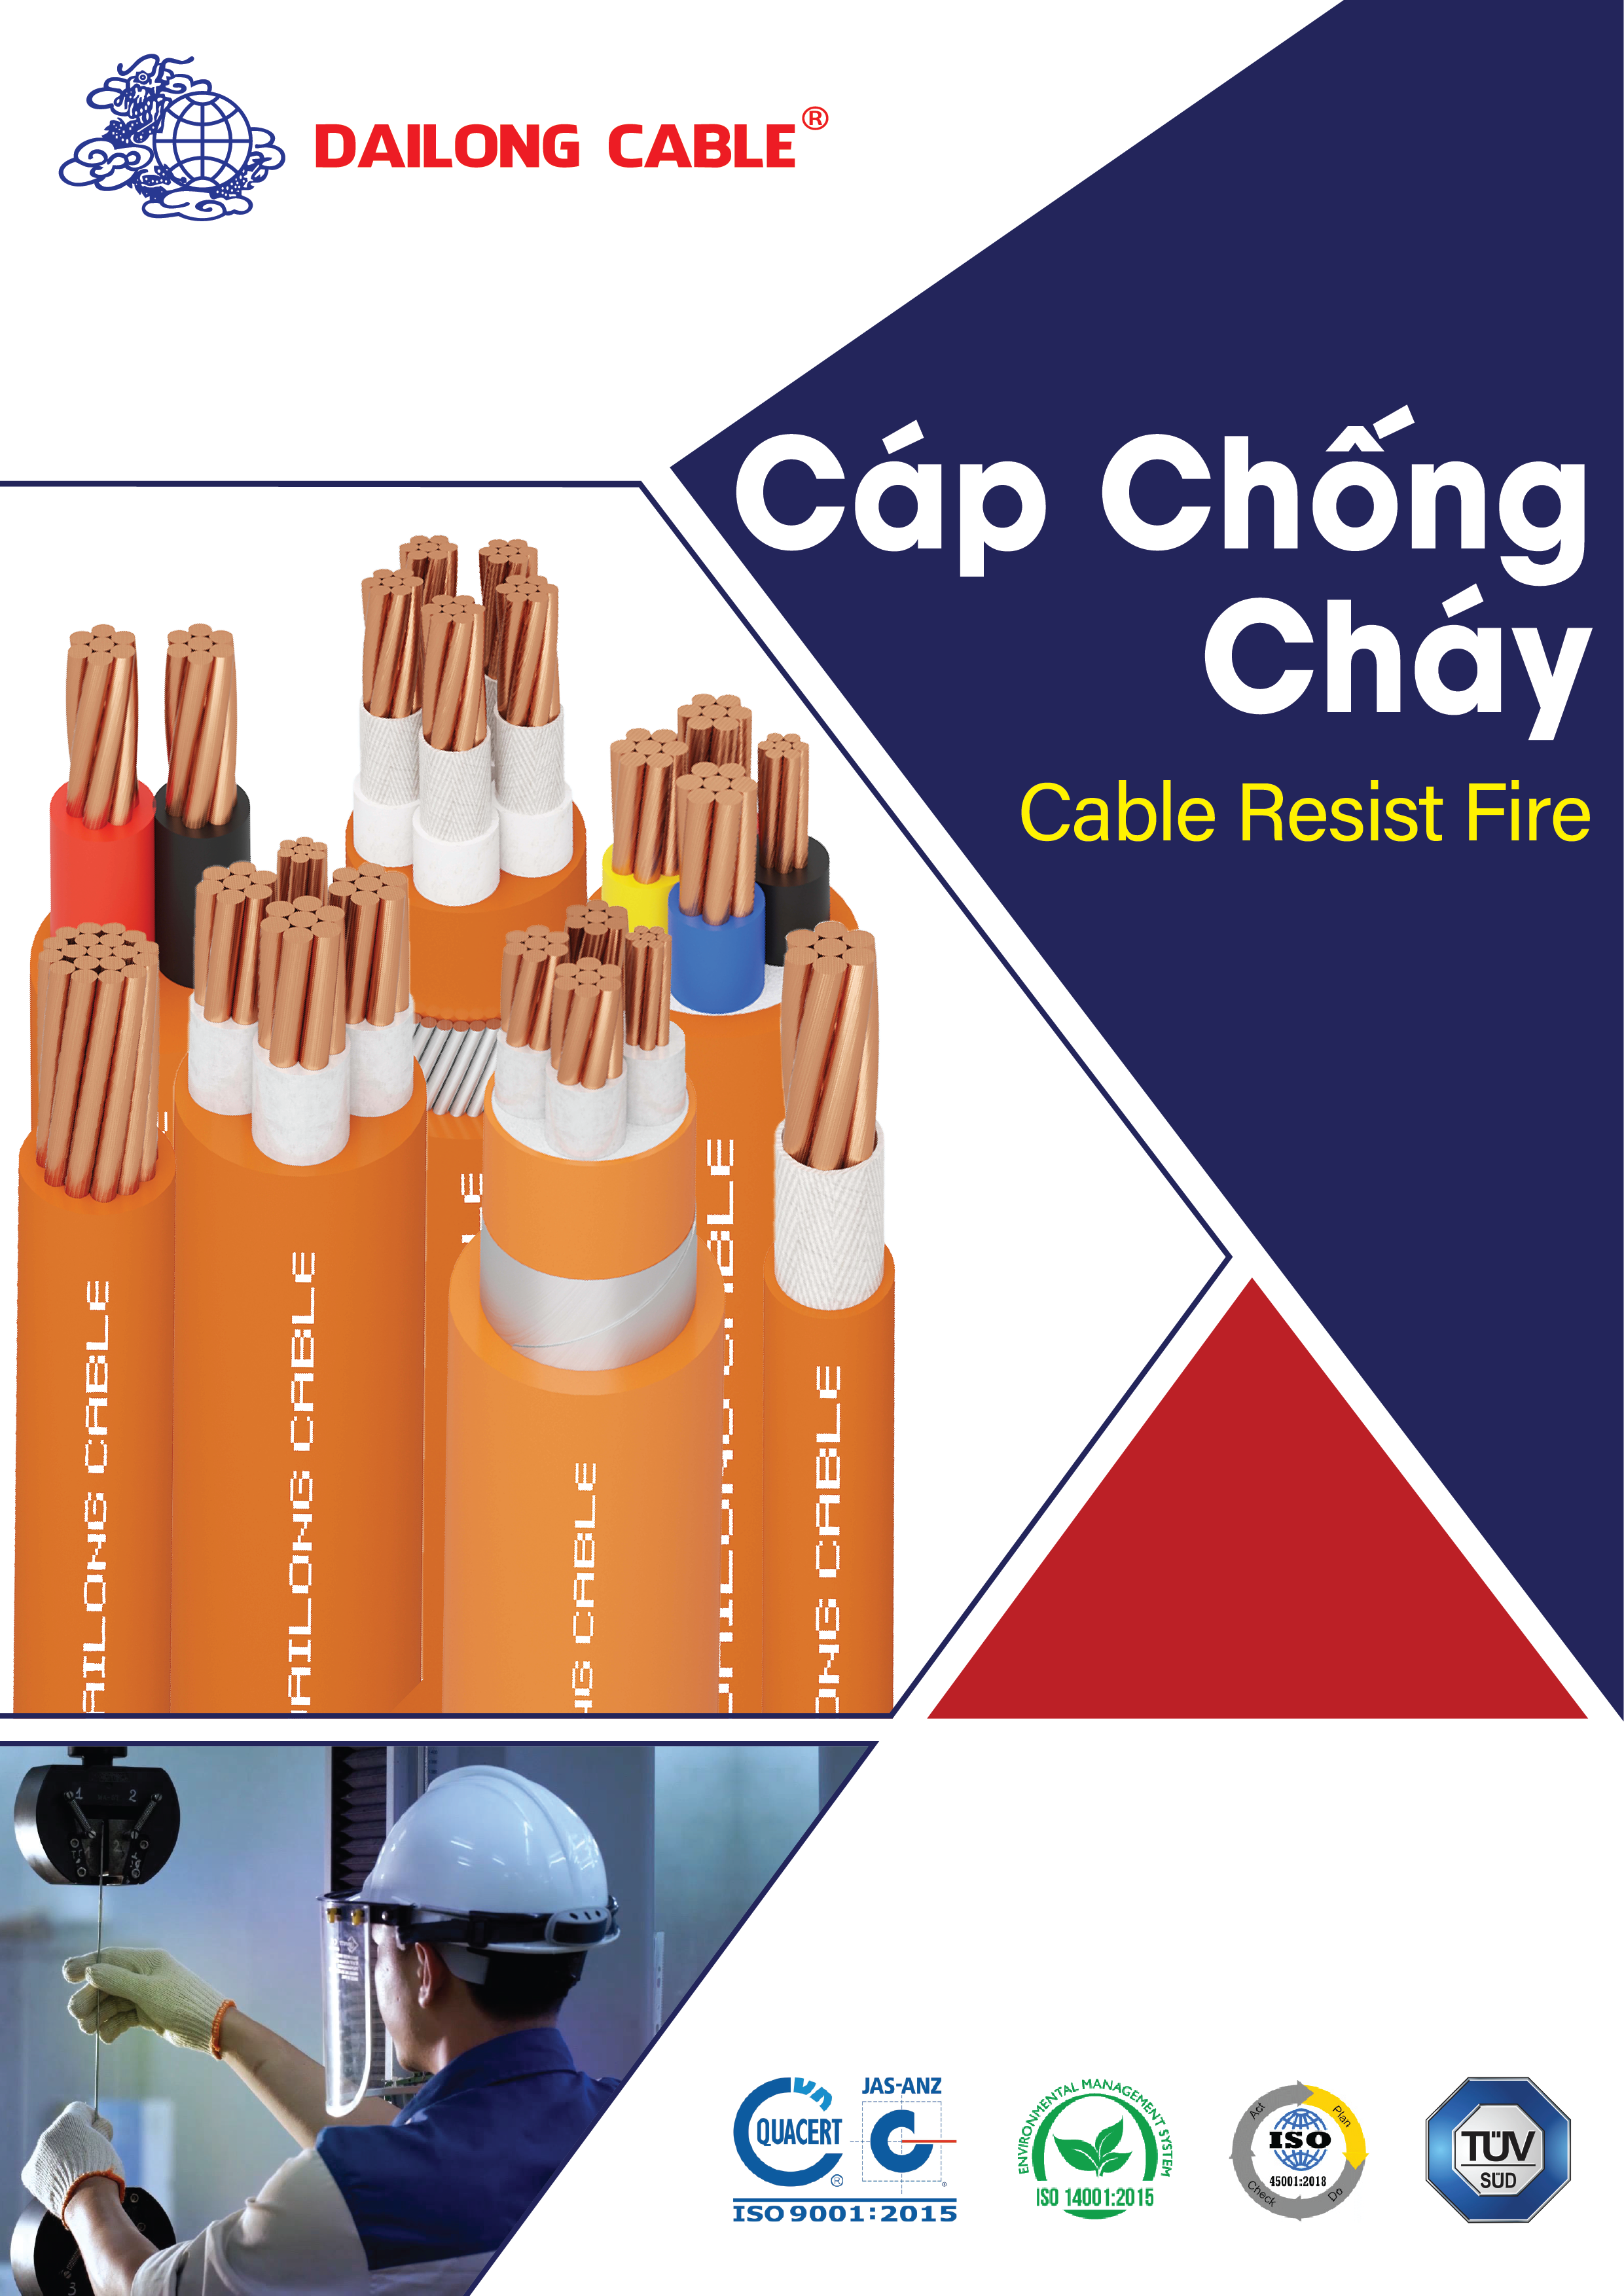 Cable Resist Fire